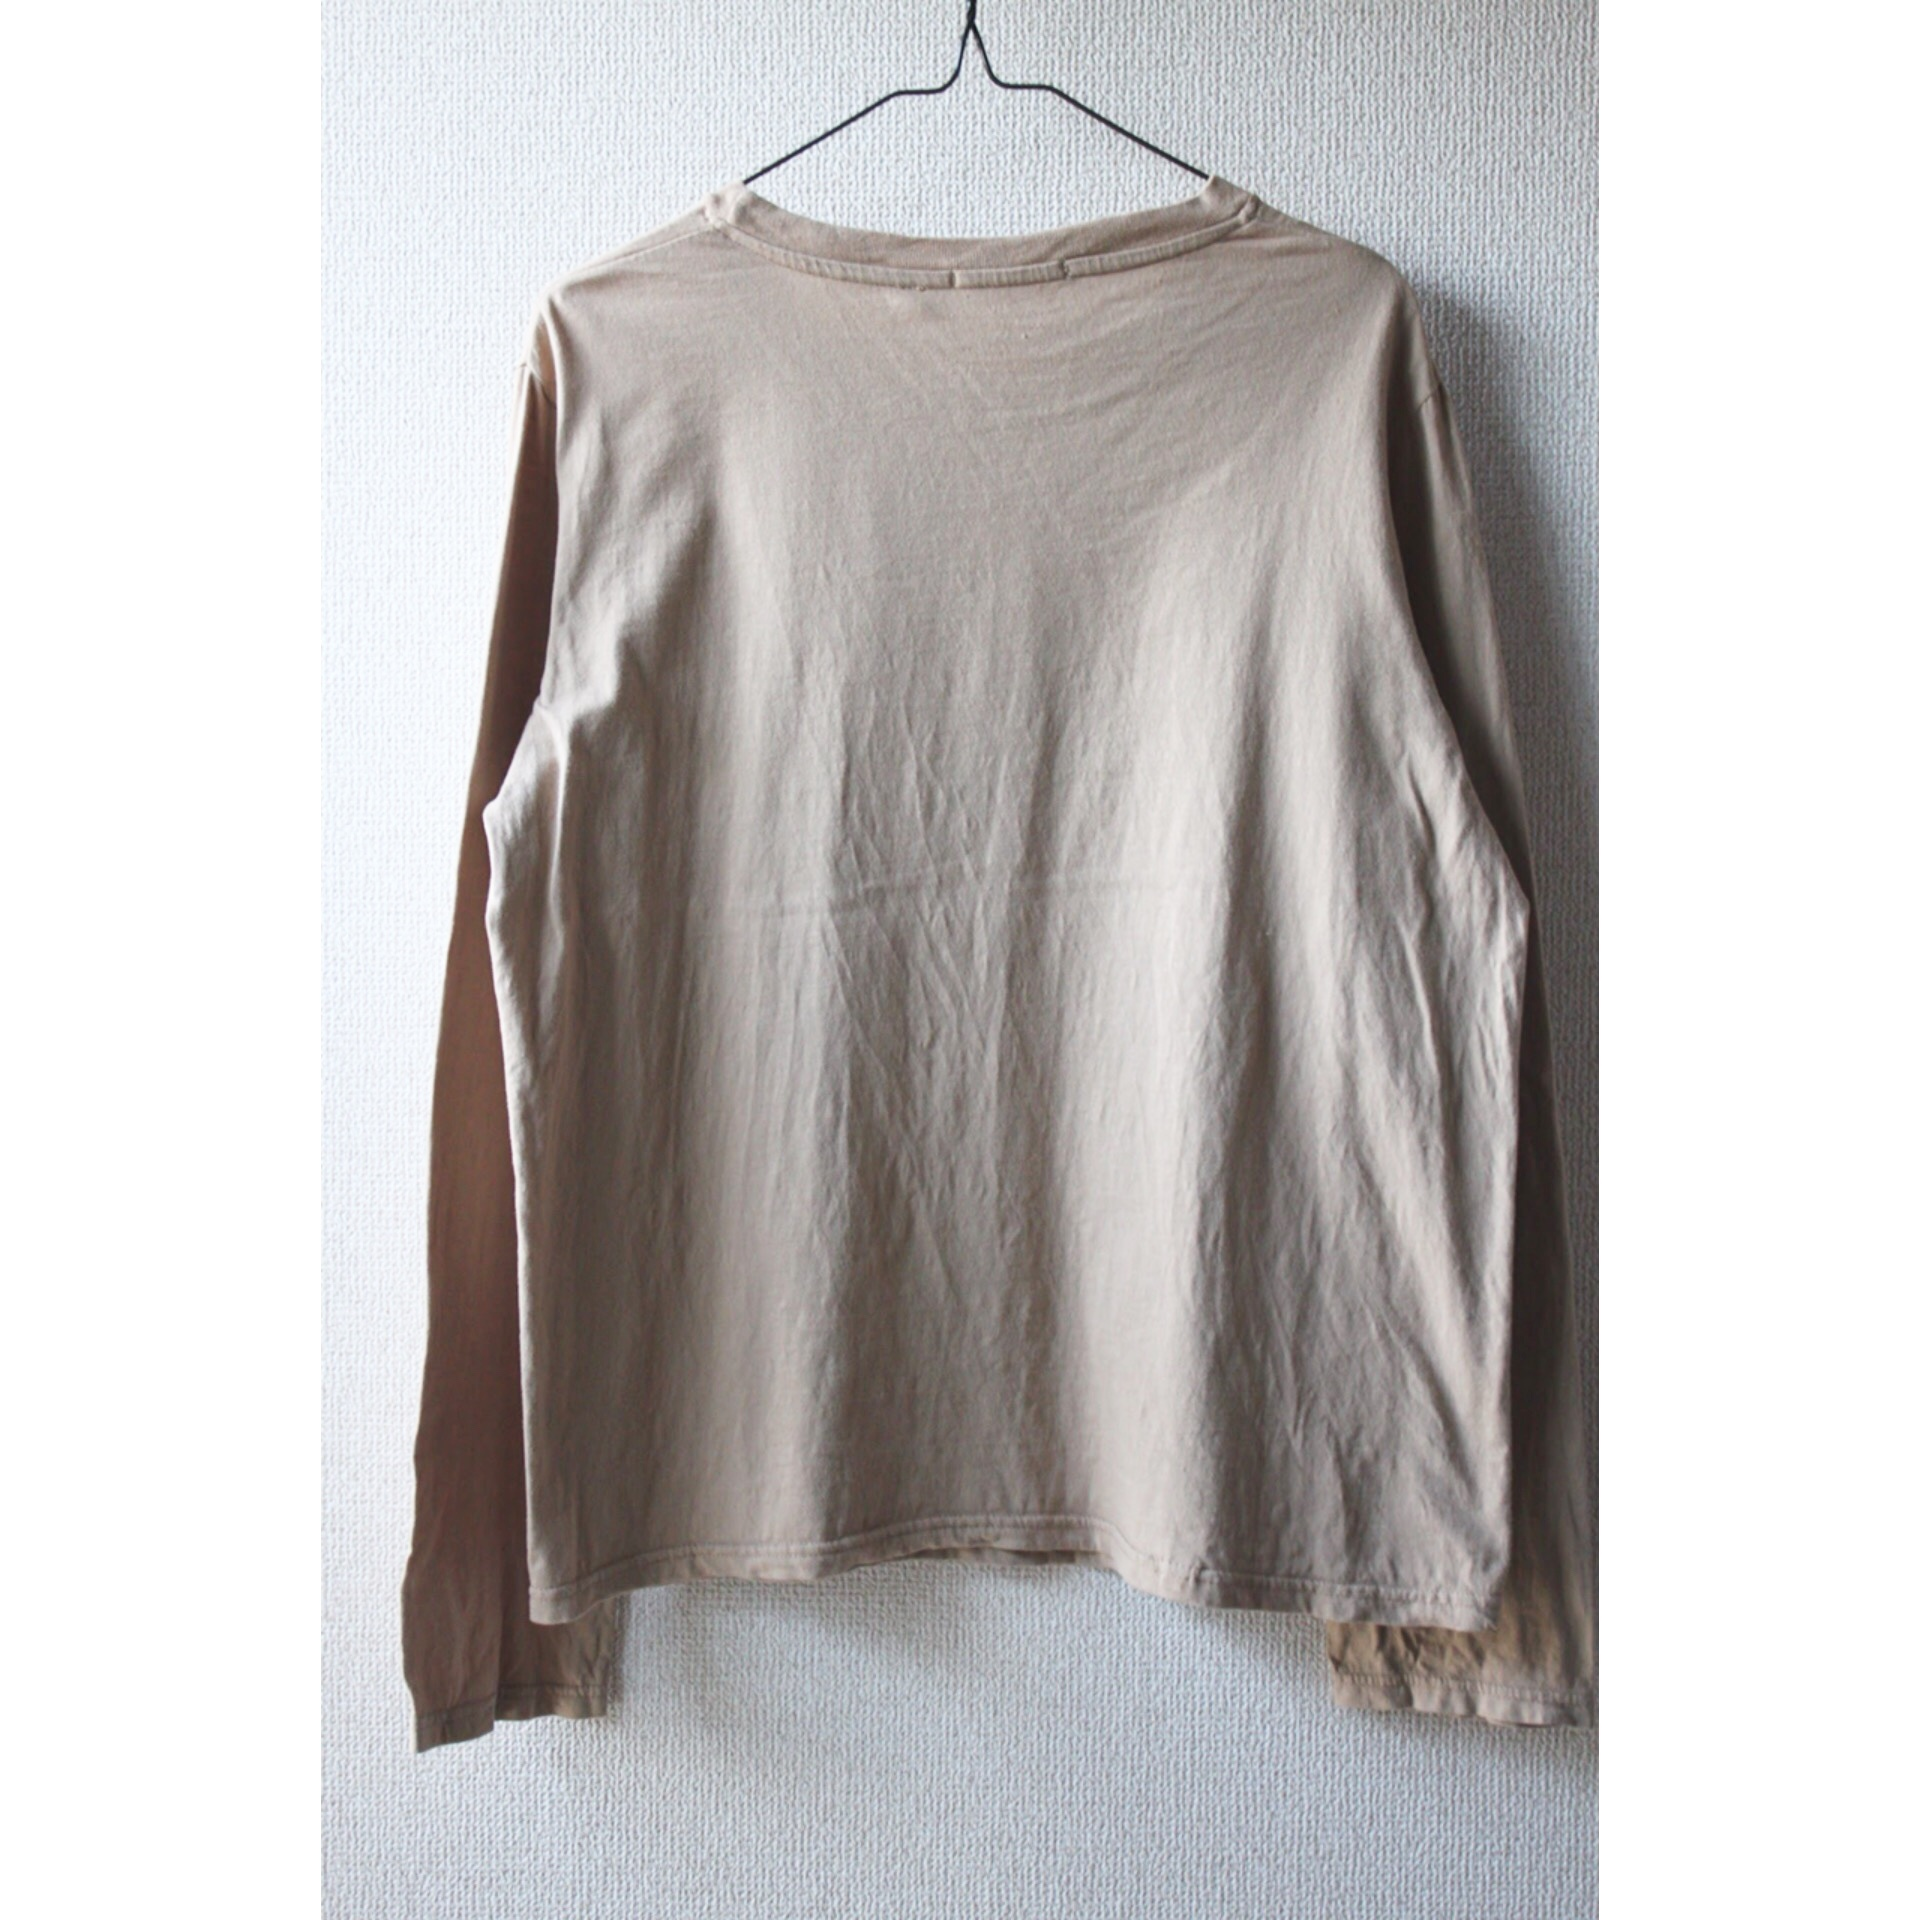 Long sleeve shirt by Helmut Lang